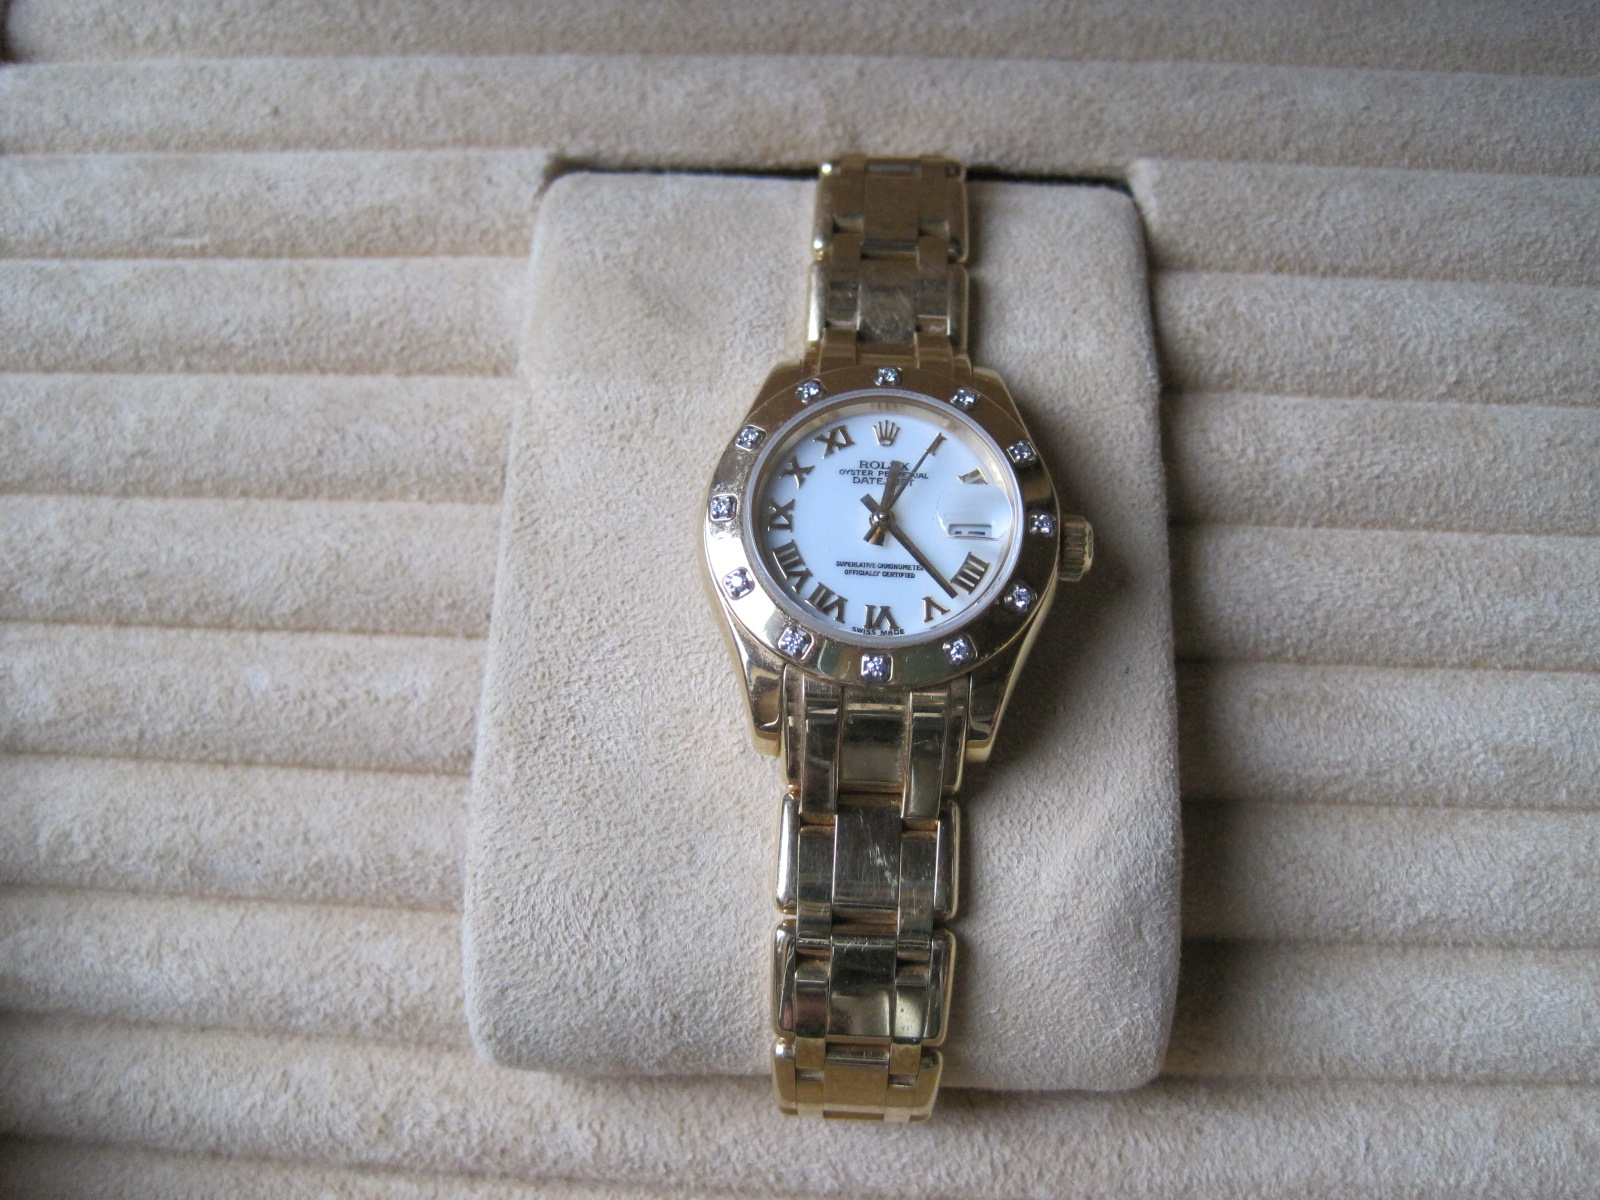 Lot 47 - ROLEX Oyster Perpetual Lady DateJust Chronometer watch in 18ct yellow gold, bezel set [...]